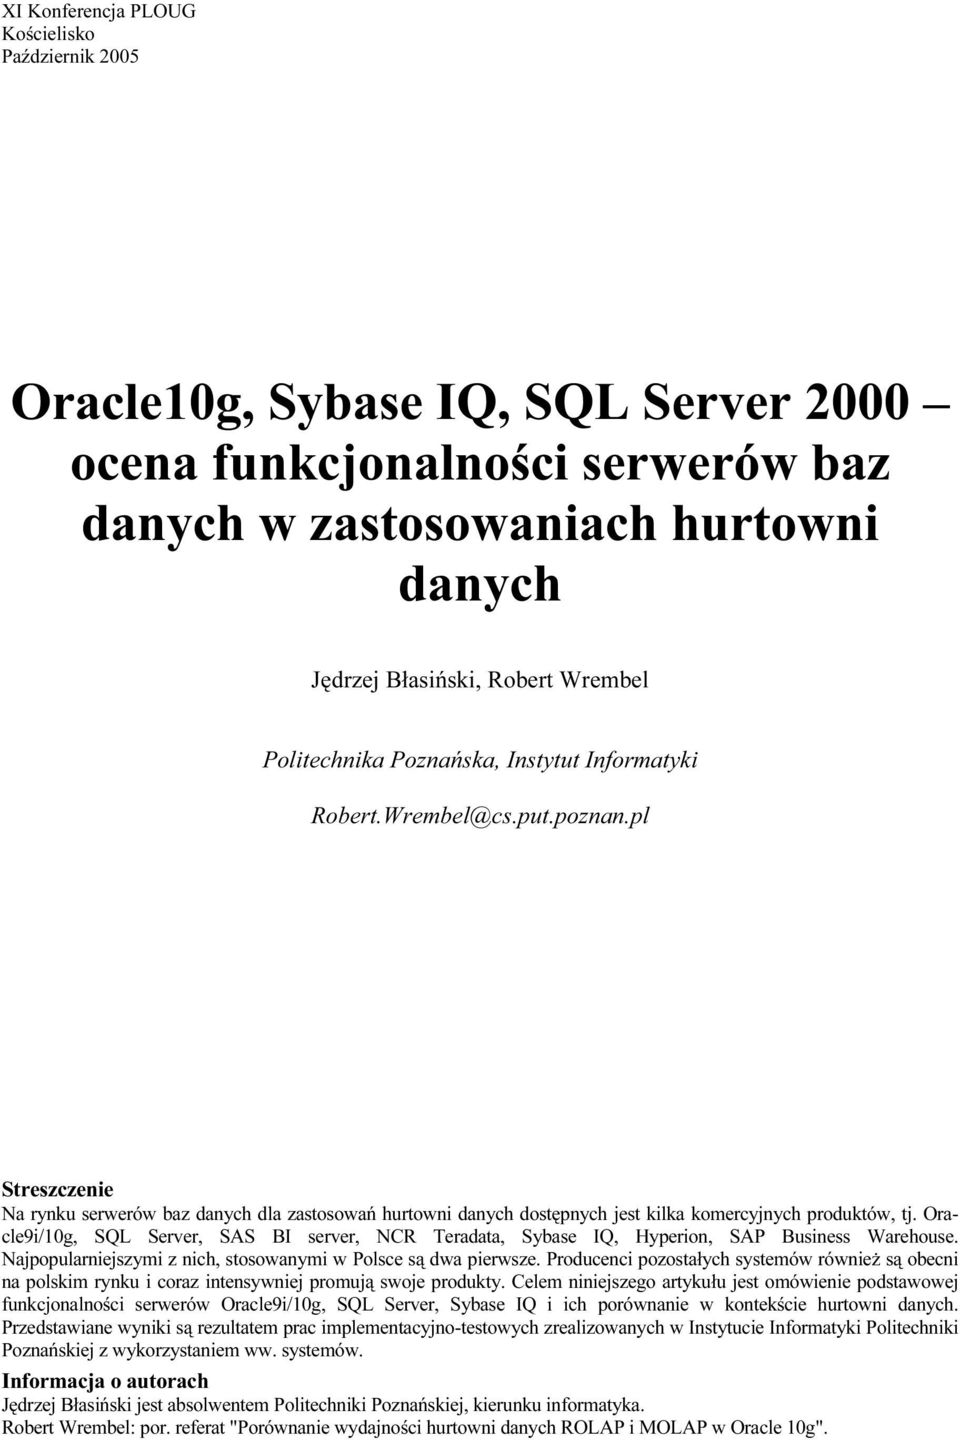 Oracle9i/10g, SQL Server, SAS BI server, NCR Teradata, Sybase IQ, Hyperion, SAP Business Warehouse. Najpopularniejszymi z nich, stosowanymi w Polsce są dwa pierwsze.